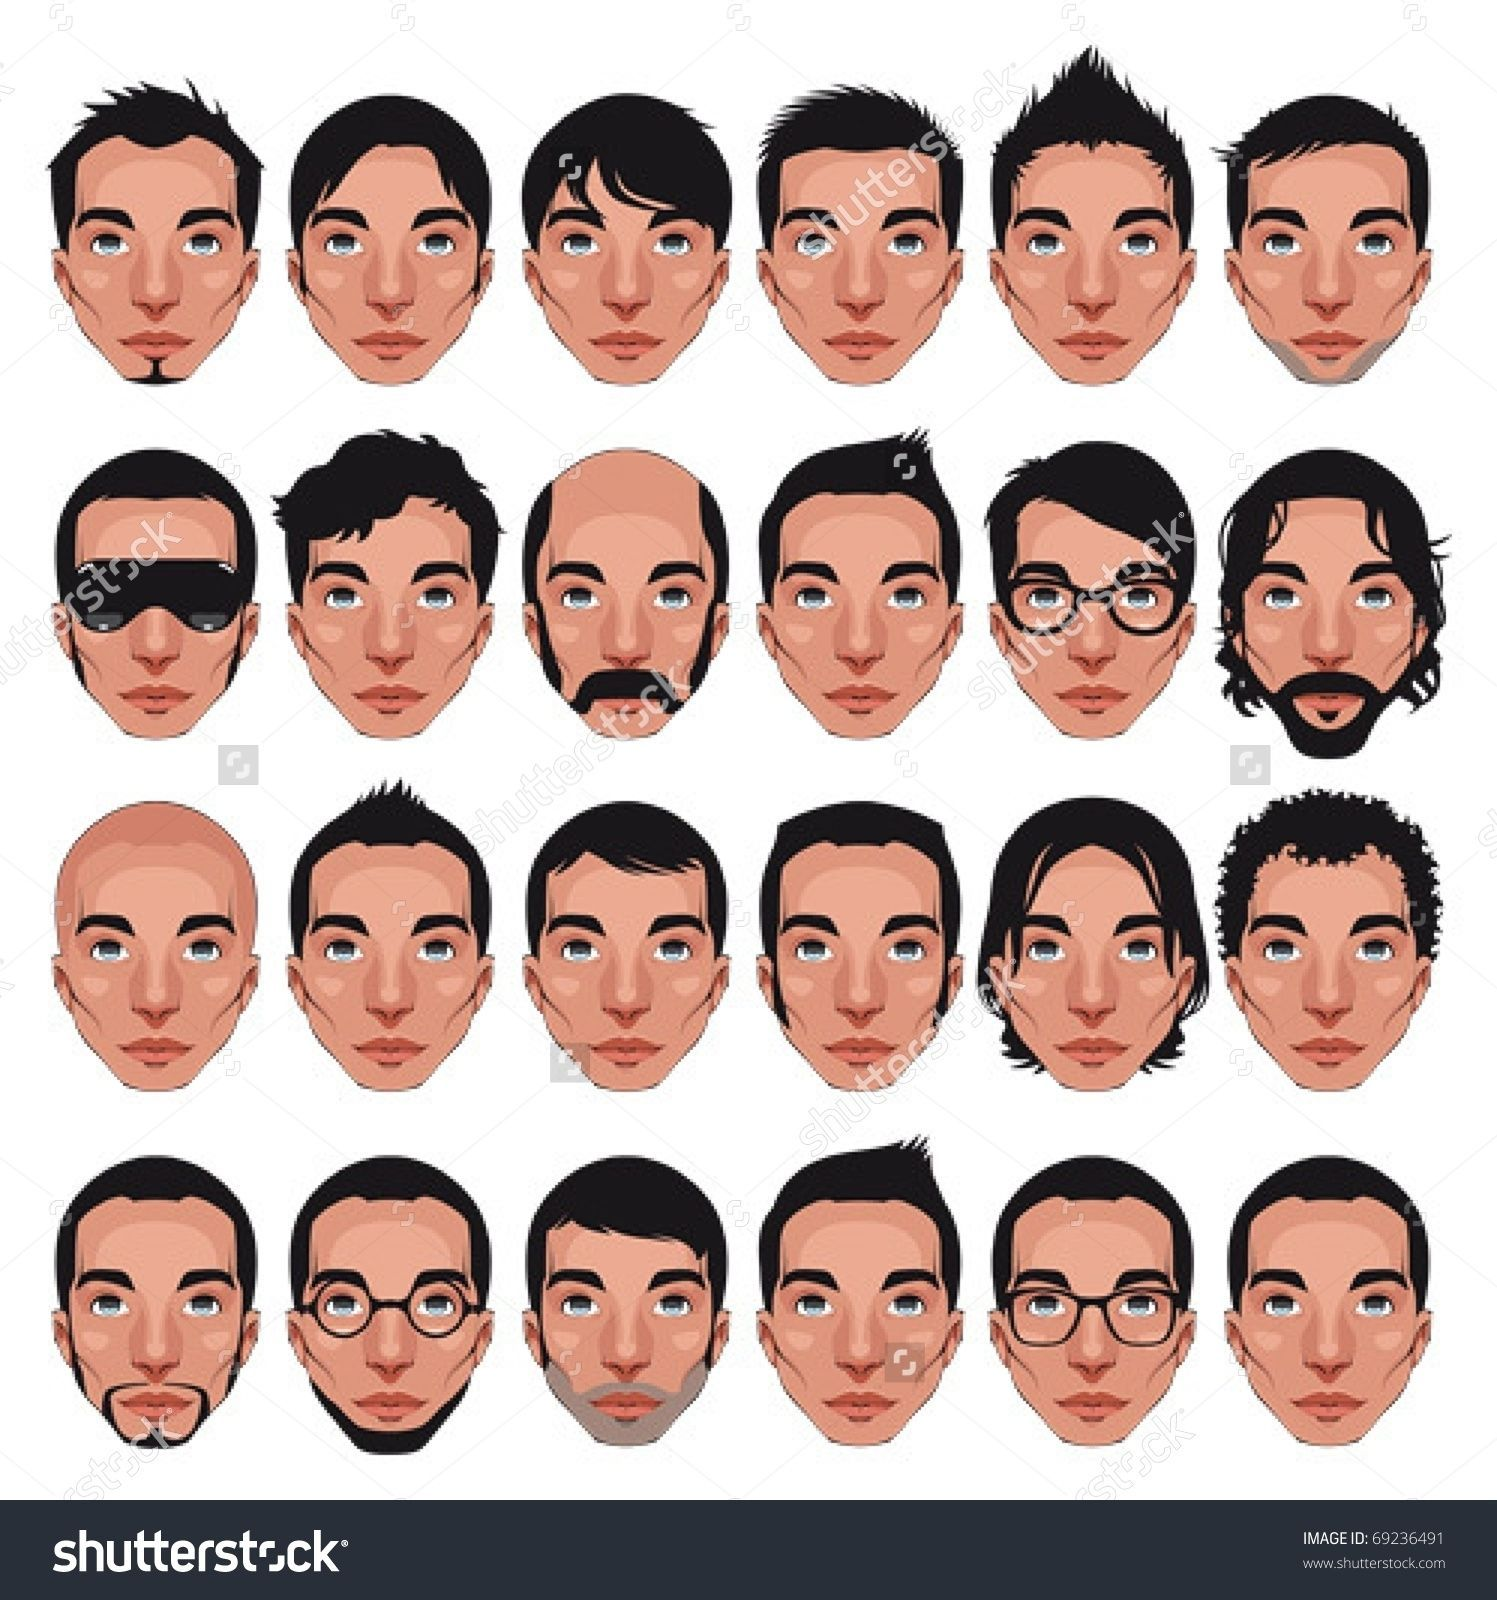 Different Haircut Names For Guys Different Haircut Haircutnames Names Hairstylesnames Haircut Names For Men Hairstyle Names Men Hairstyle Names